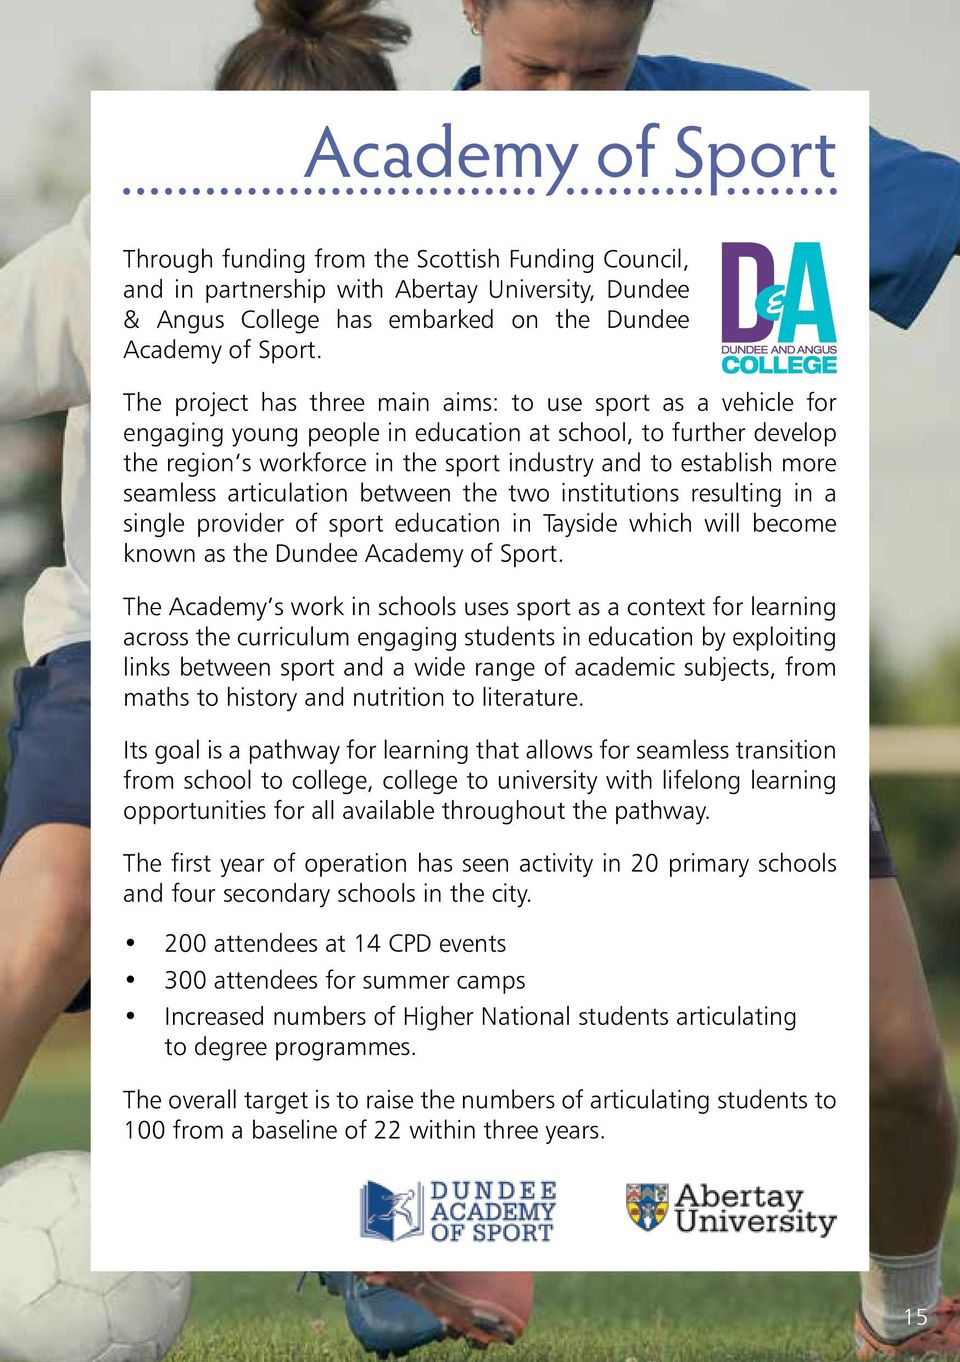 seamless articulation between the two institutions resulting in a single provider of sport education in Tayside which will become known as the Dundee Academy of Sport.